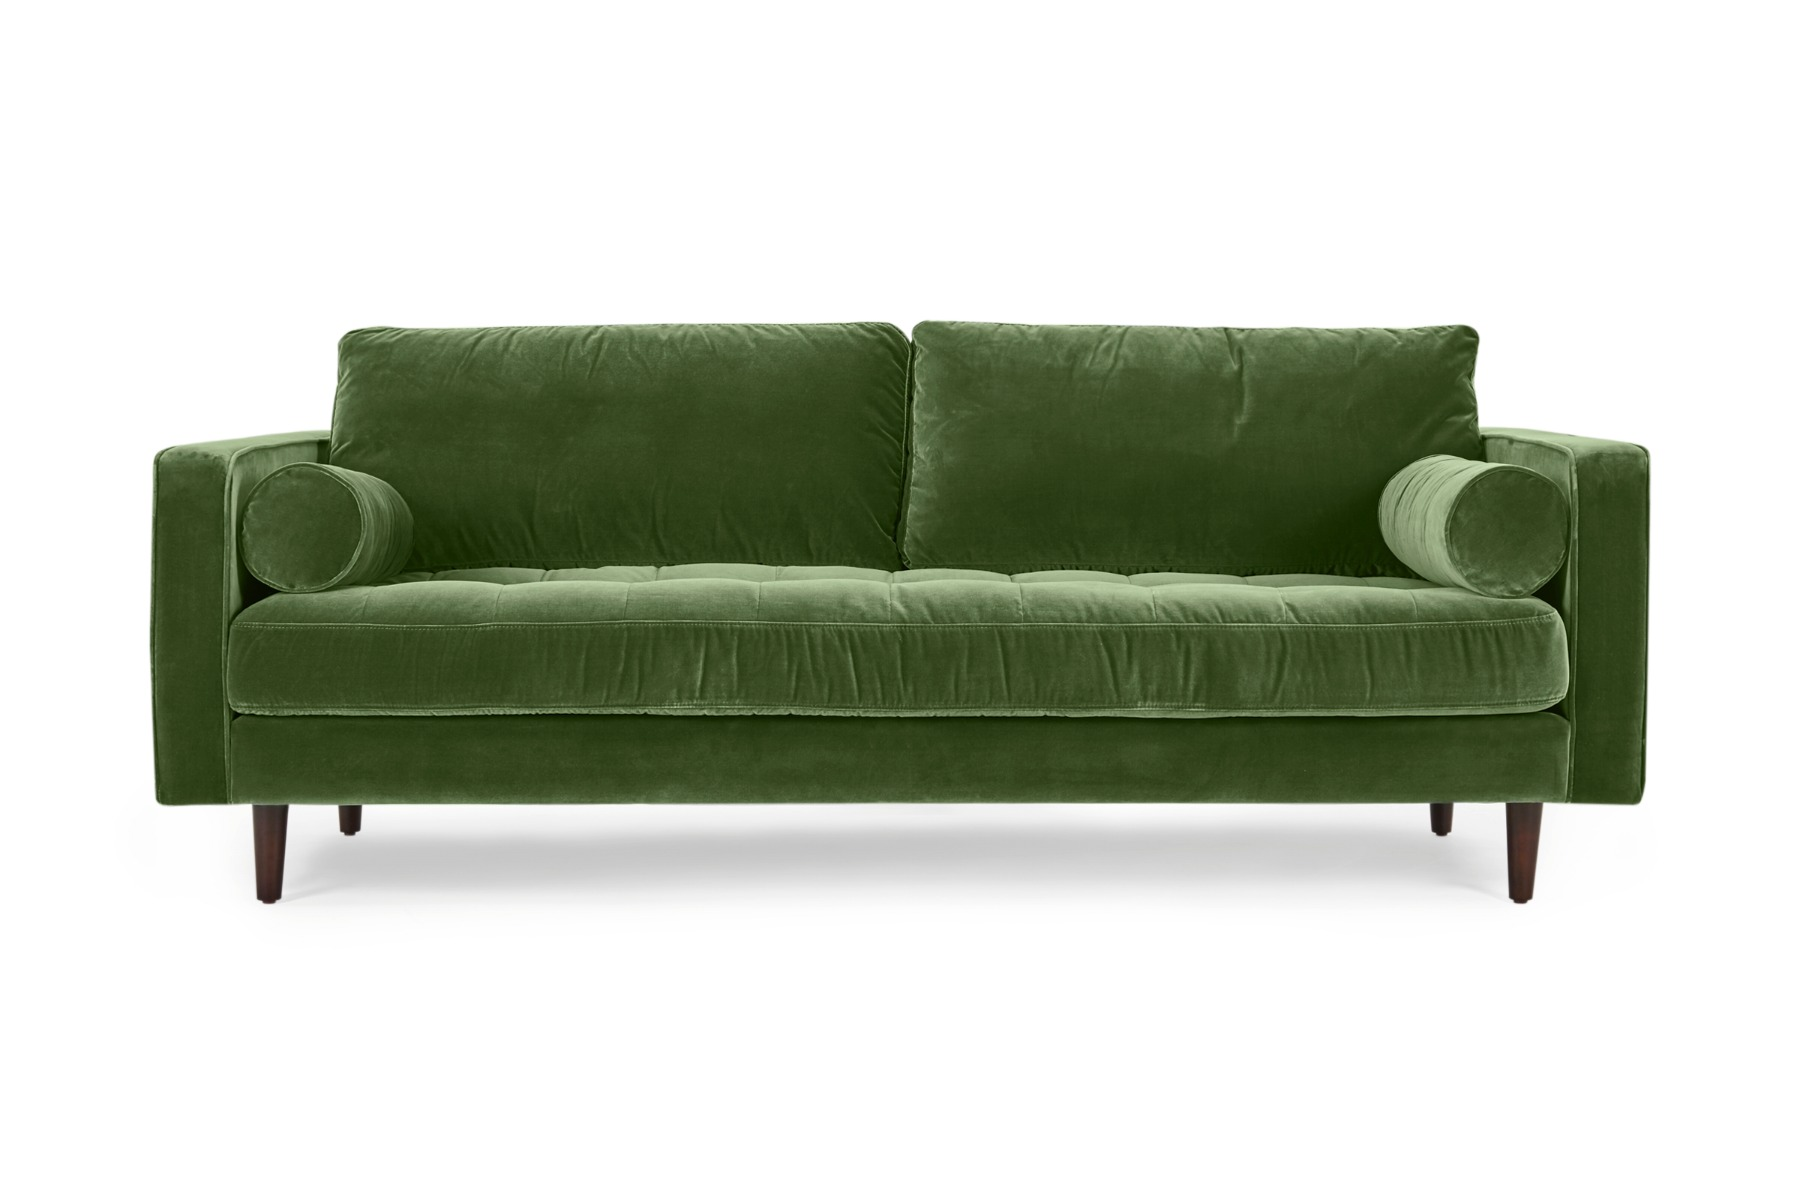 Draper Velvet Classic 3 Seat Sofa Green Velvet by Lounge Lovers by Lounge Lovers, a Sofas for sale on Style Sourcebook